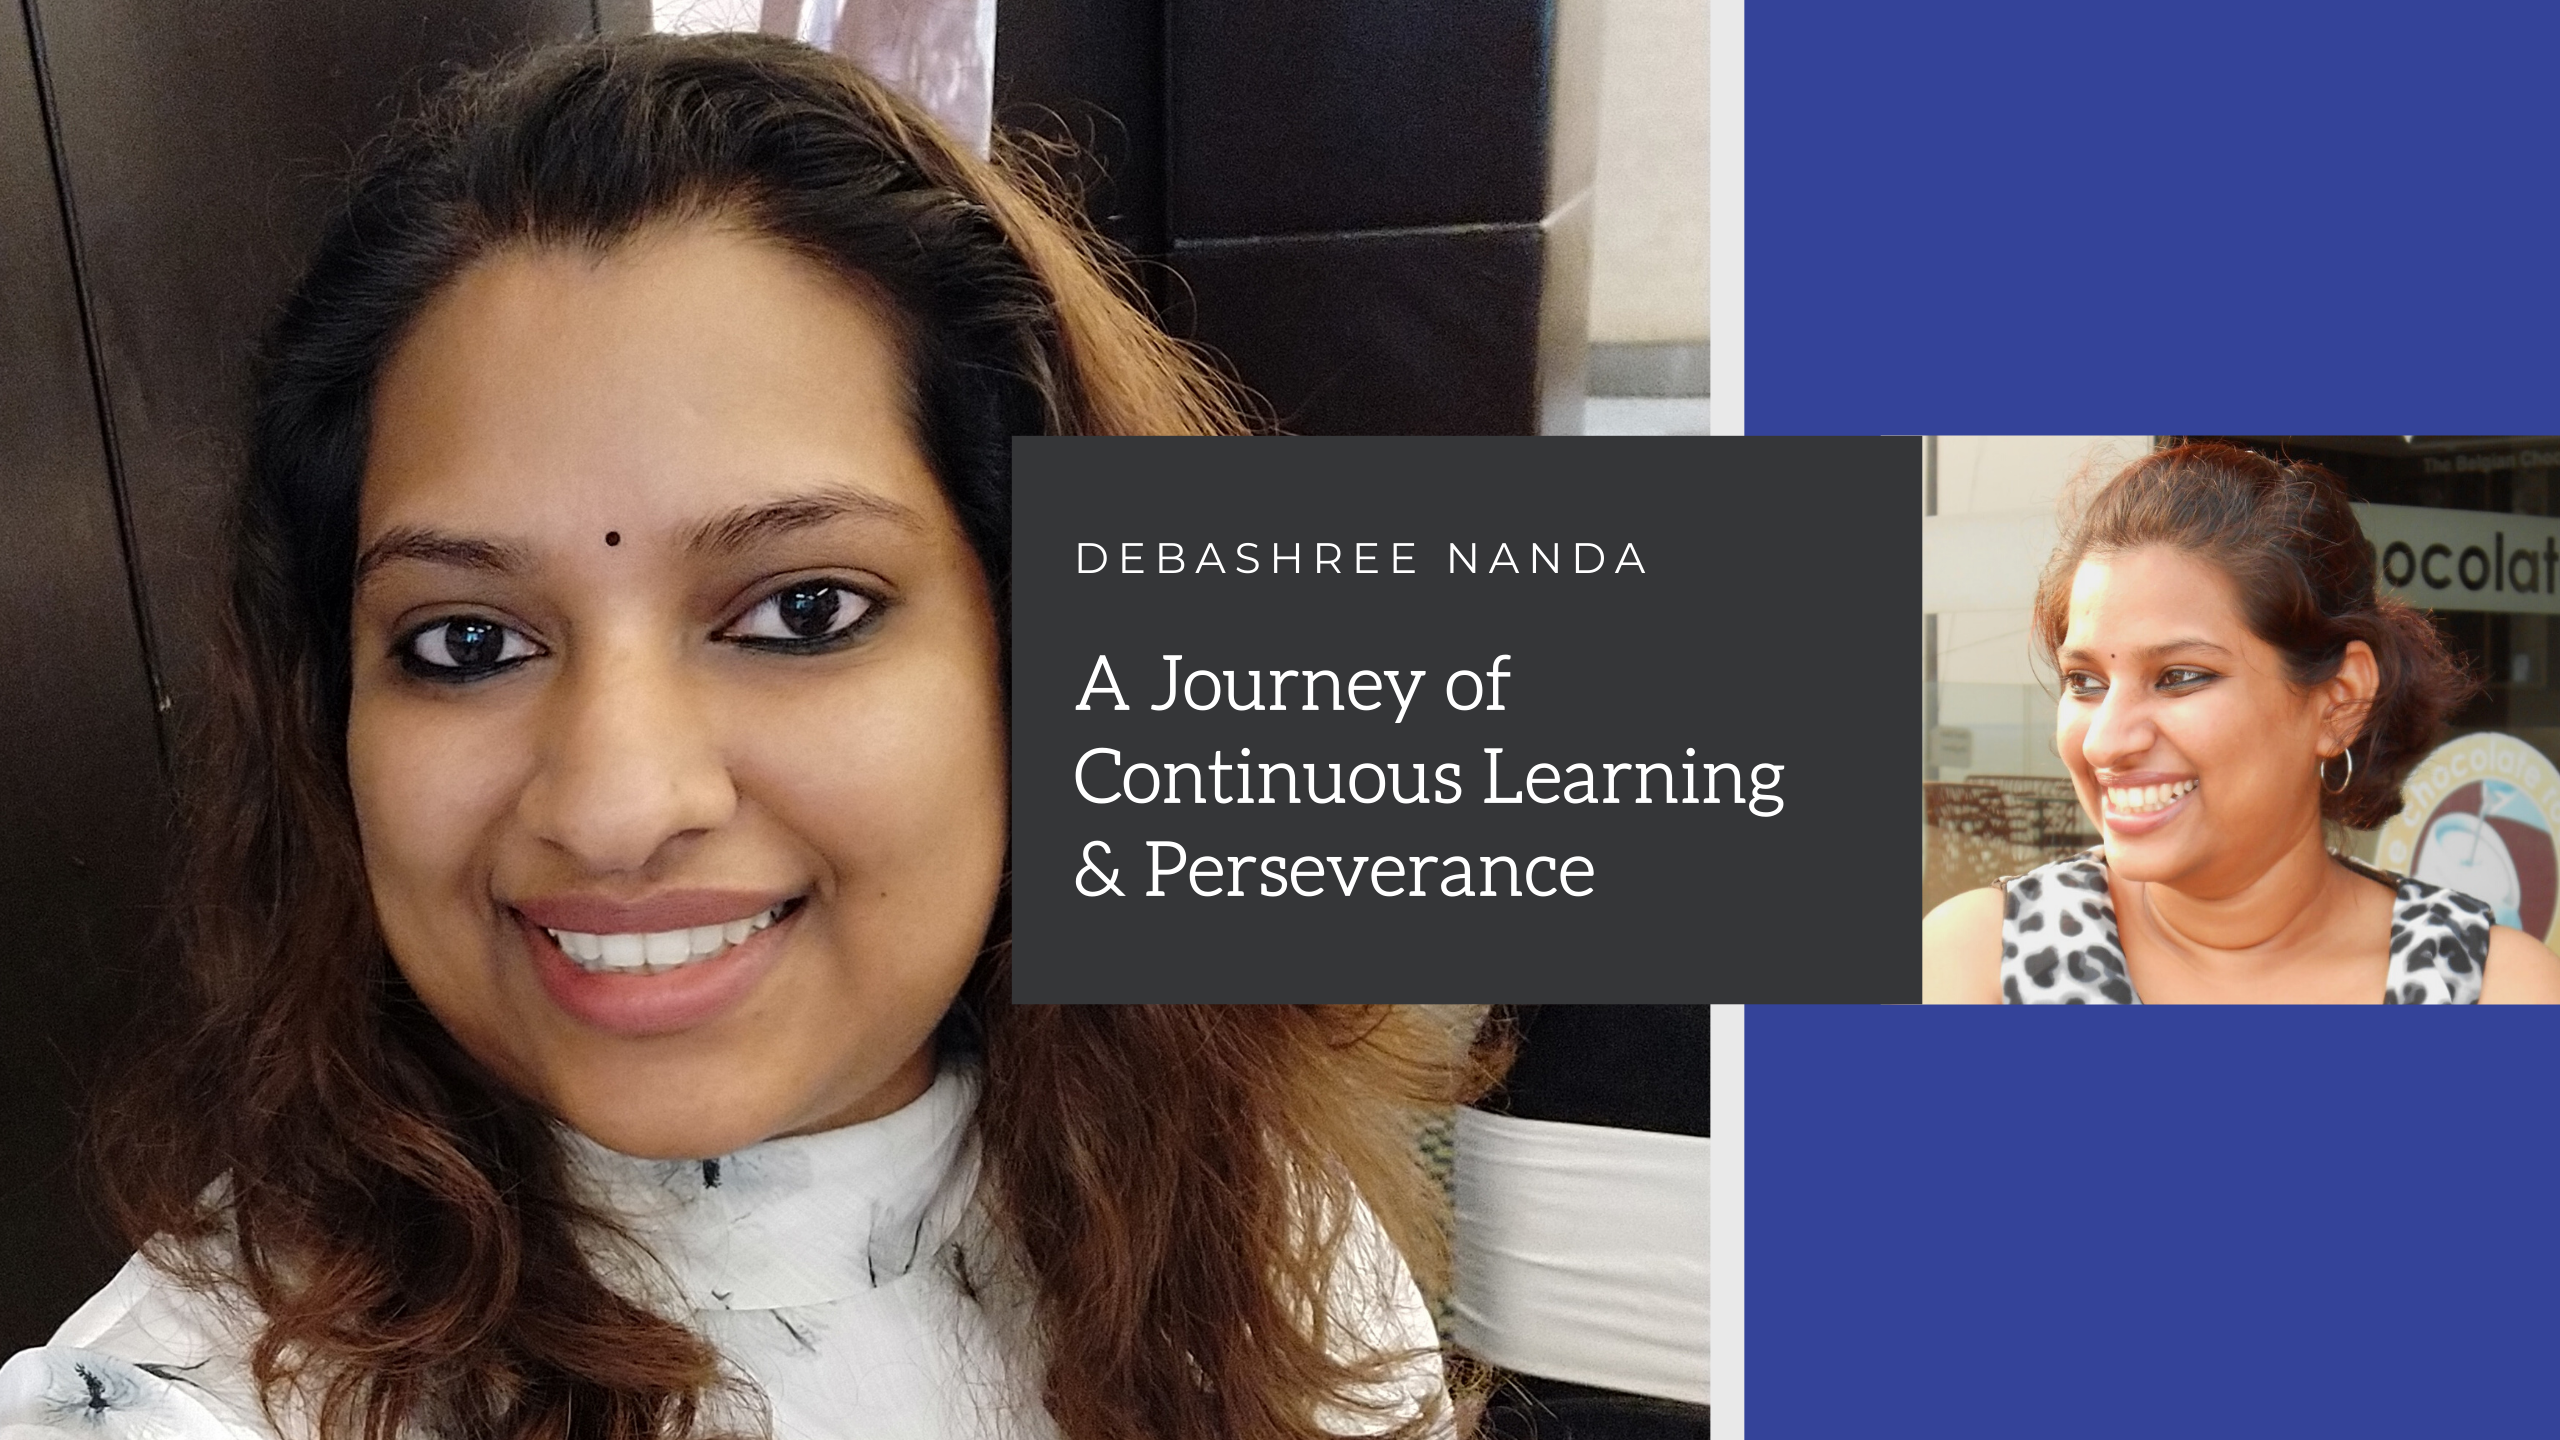 A Journey of Continuous Learning & Perseverance